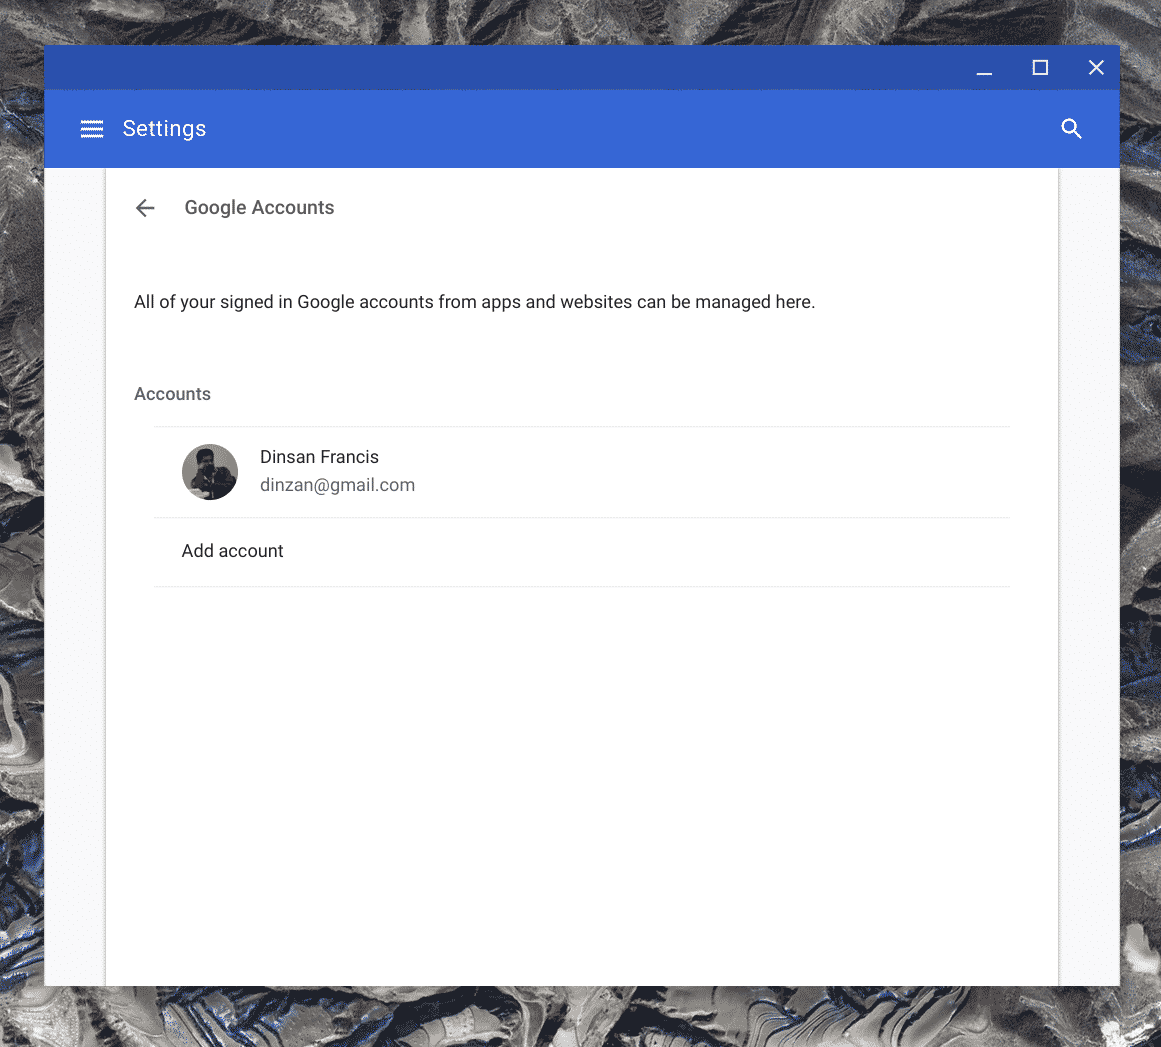 Chrome OS to Support Multiple Google Accounts Per User Profile